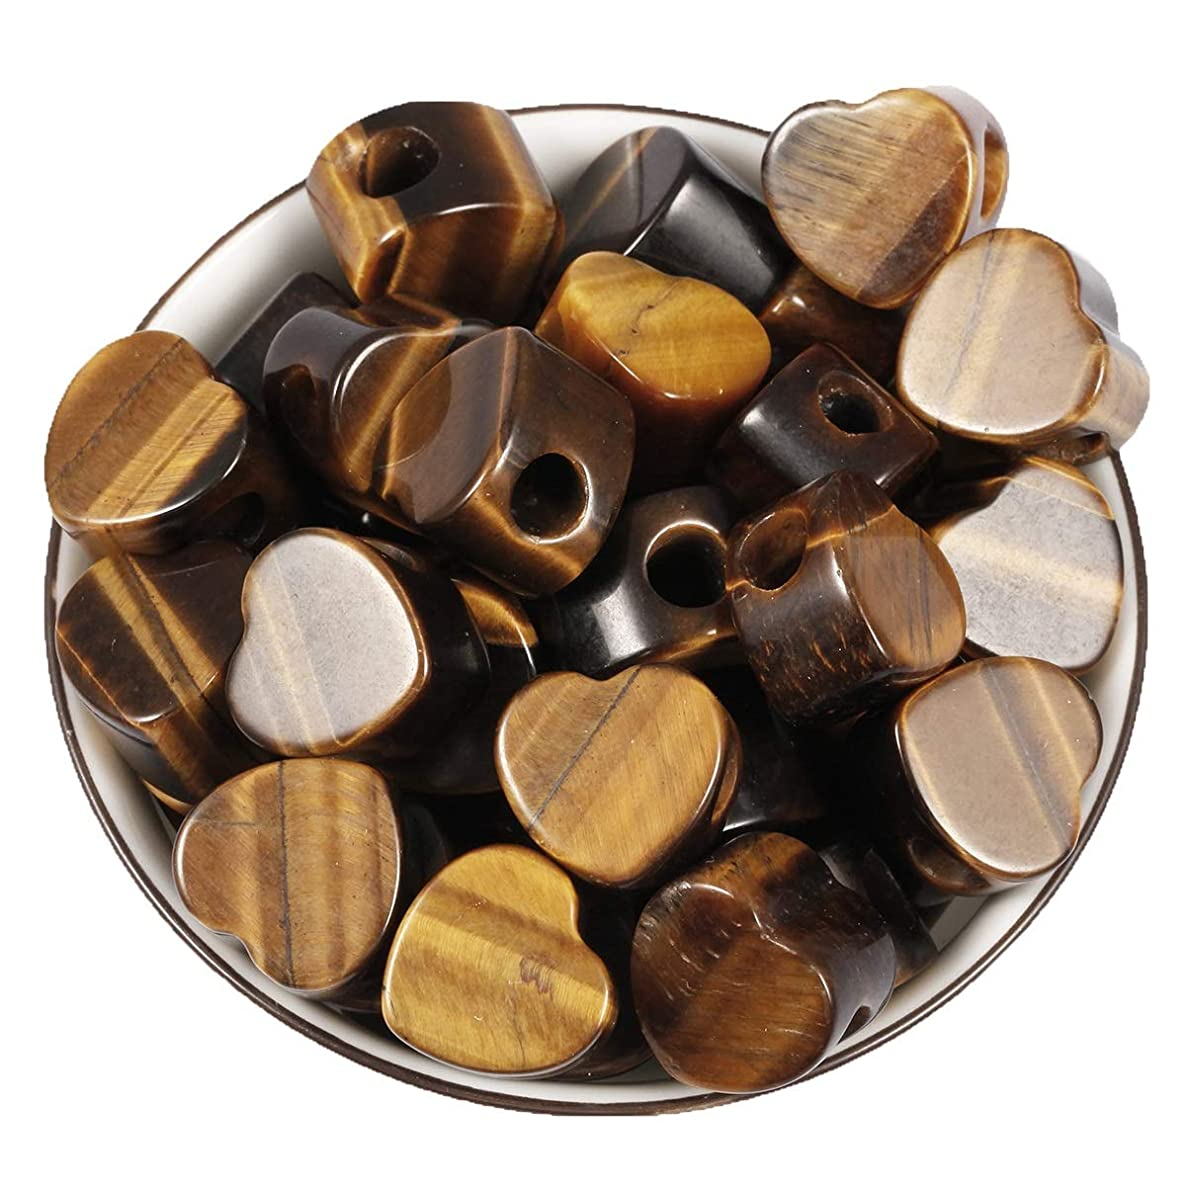 Loveliome 10 Pcs Large Hole Loose European Bead, Heart Love Jewelry Making Supplies fits Charm Bracelet,Tiger's Eye